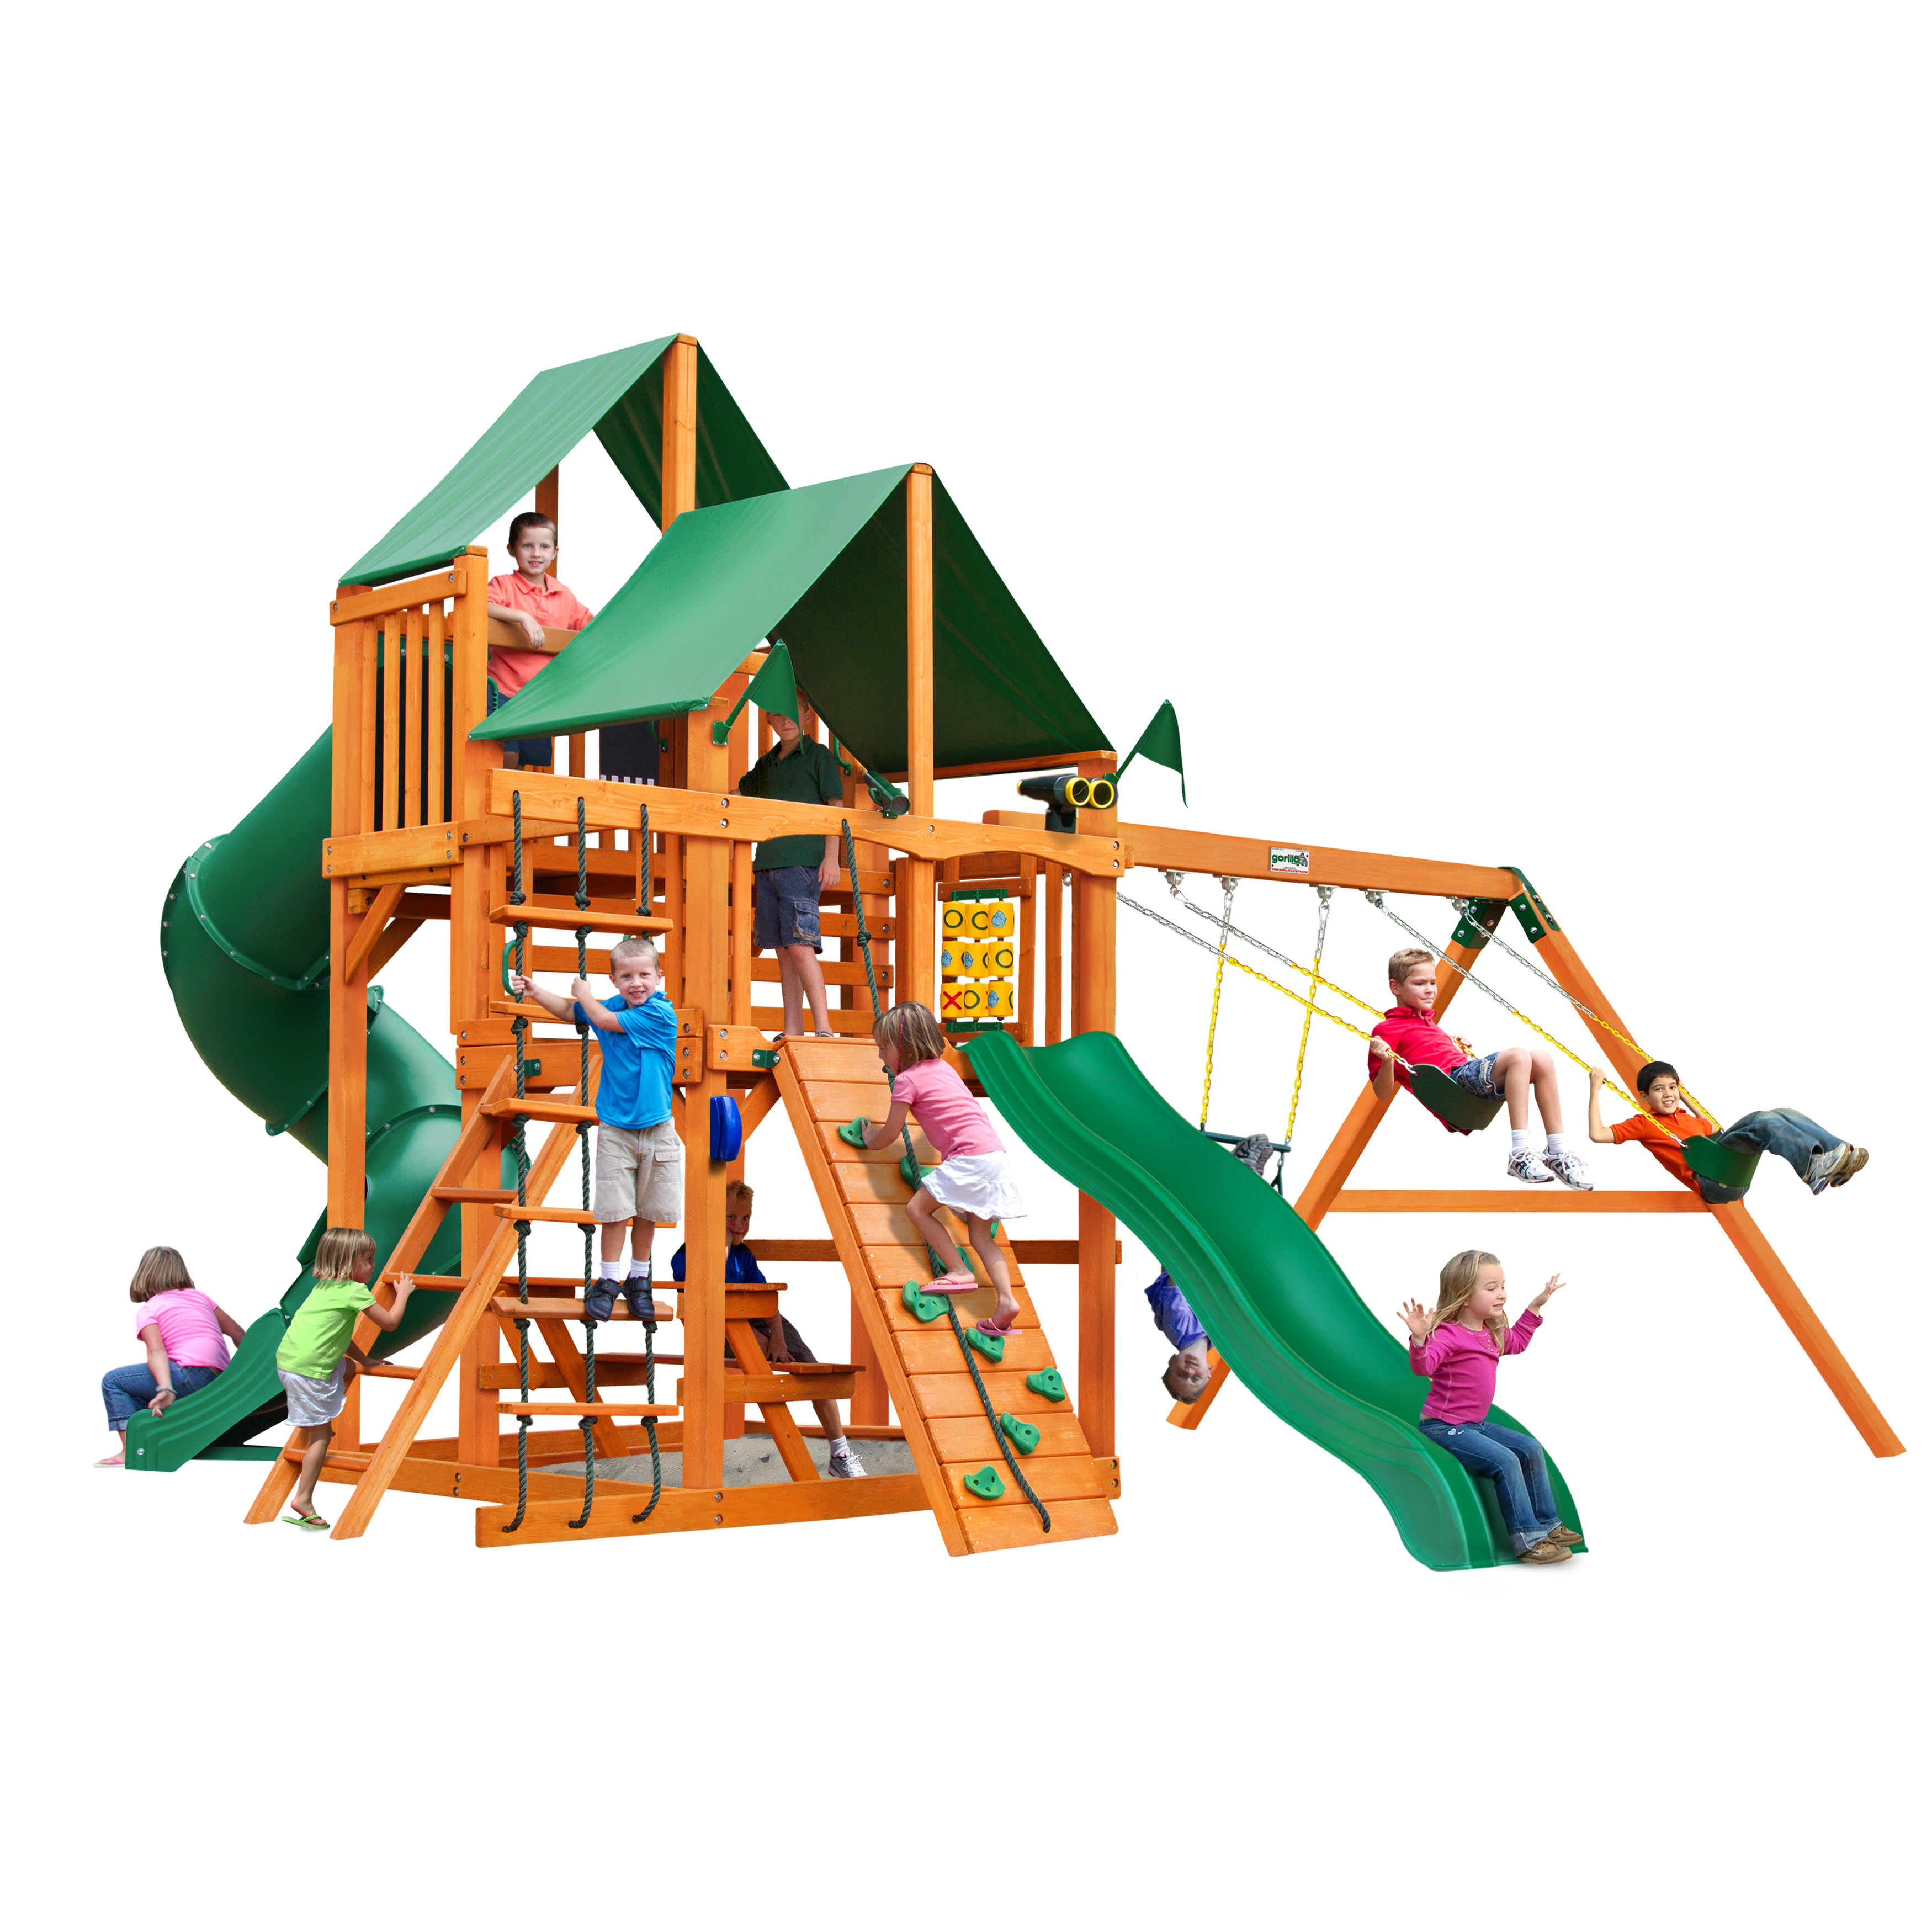 Gorilla Playsets Chateau Cedar Swing Set with Green Vinyl Canopy and Natural Cedar Posts